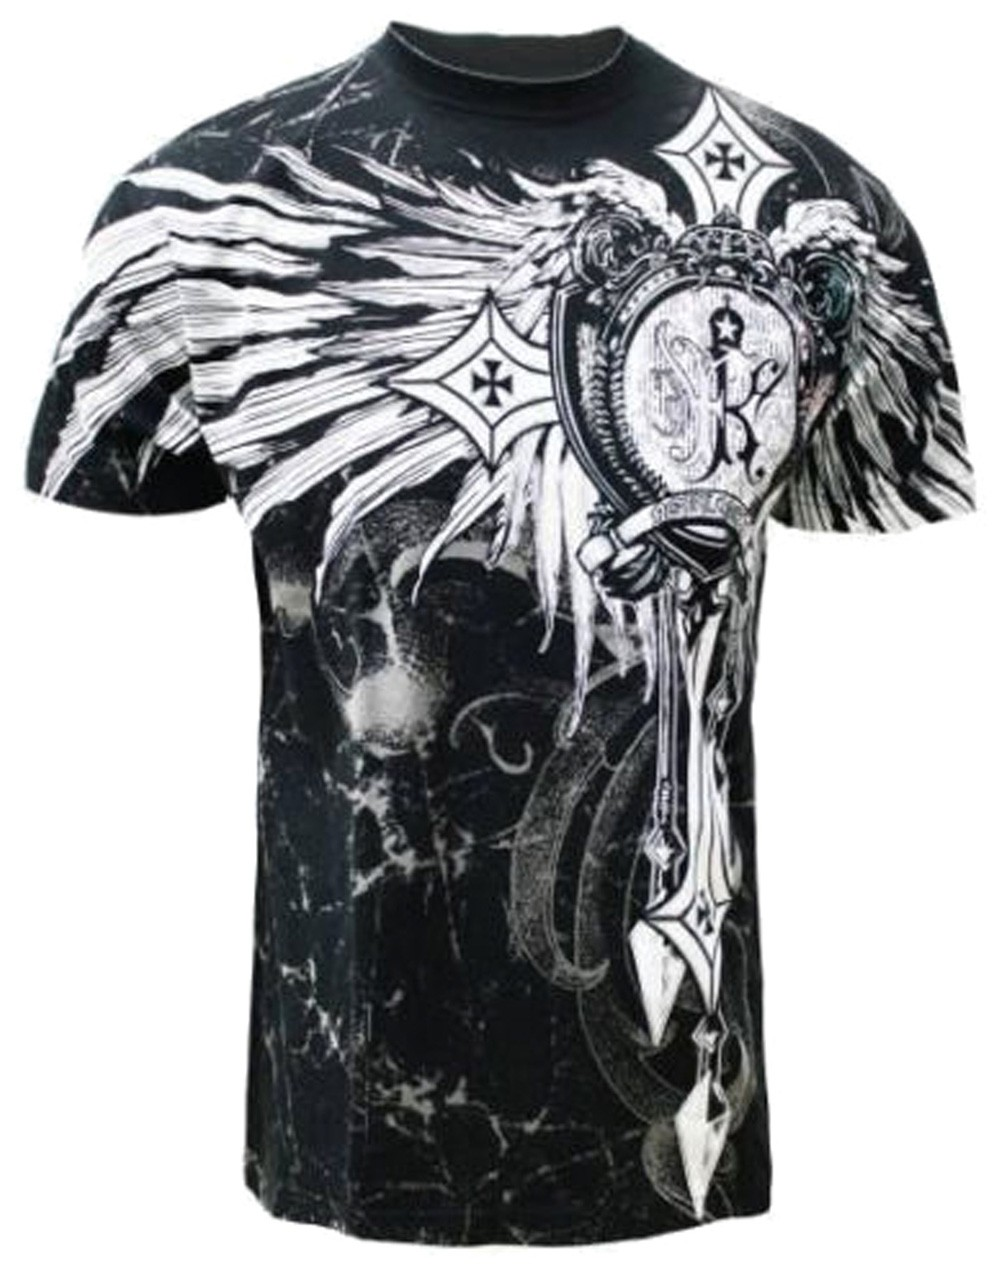 Konflic Clothing - Crosses Fenix T-Shirt